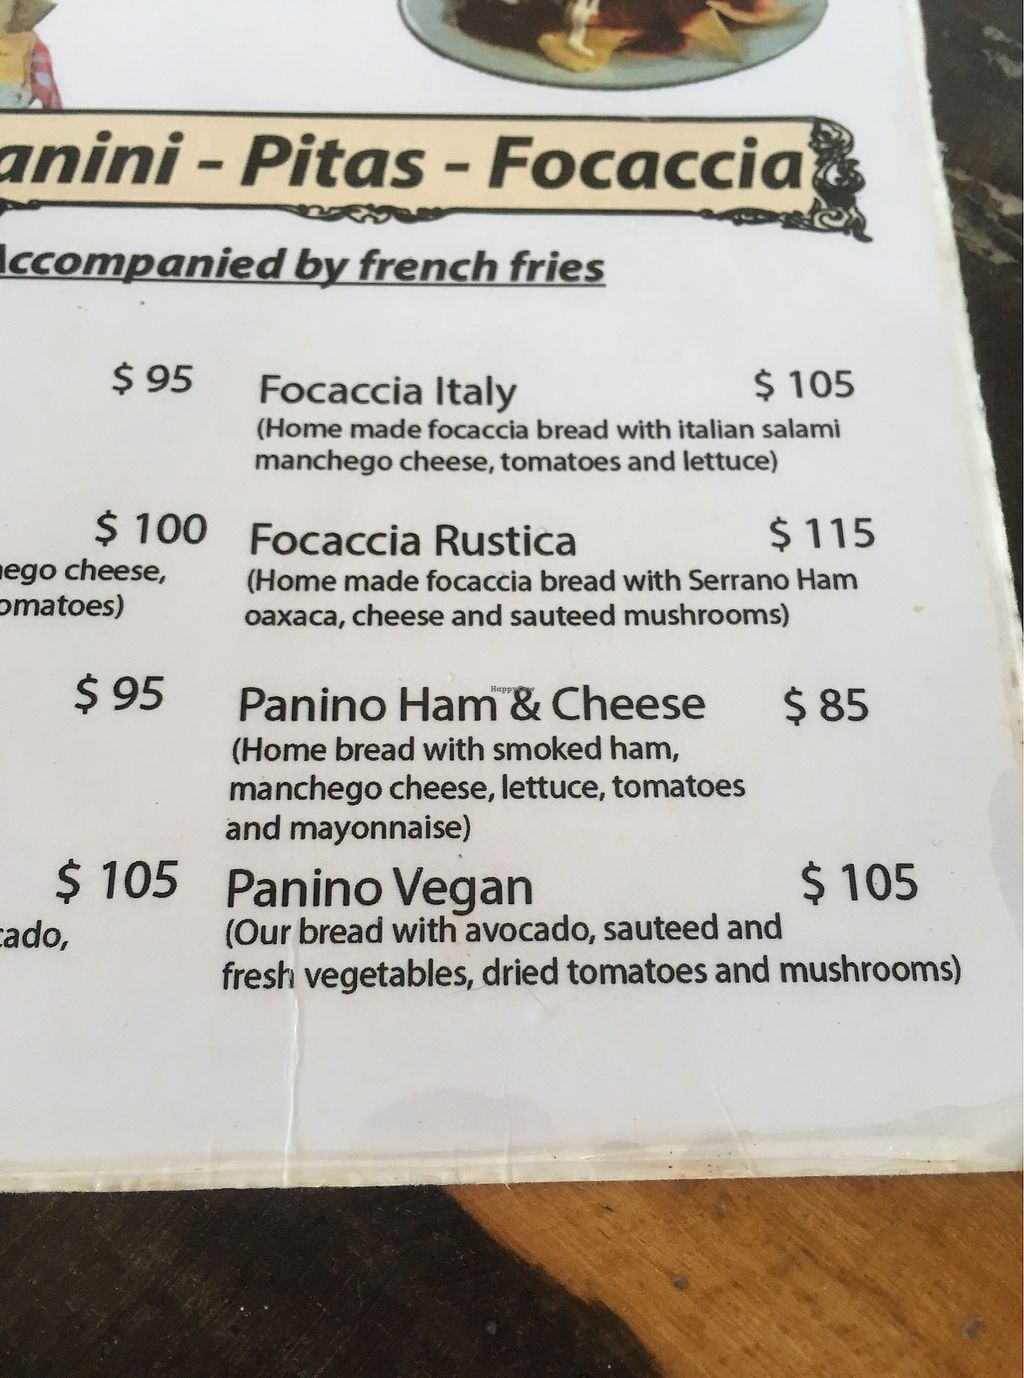 """Photo of La Tortilleria  by <a href=""""/members/profile/Sterling"""">Sterling</a> <br/>Menu page 2 <br/> October 26, 2017  - <a href='/contact/abuse/image/103448/318927'>Report</a>"""